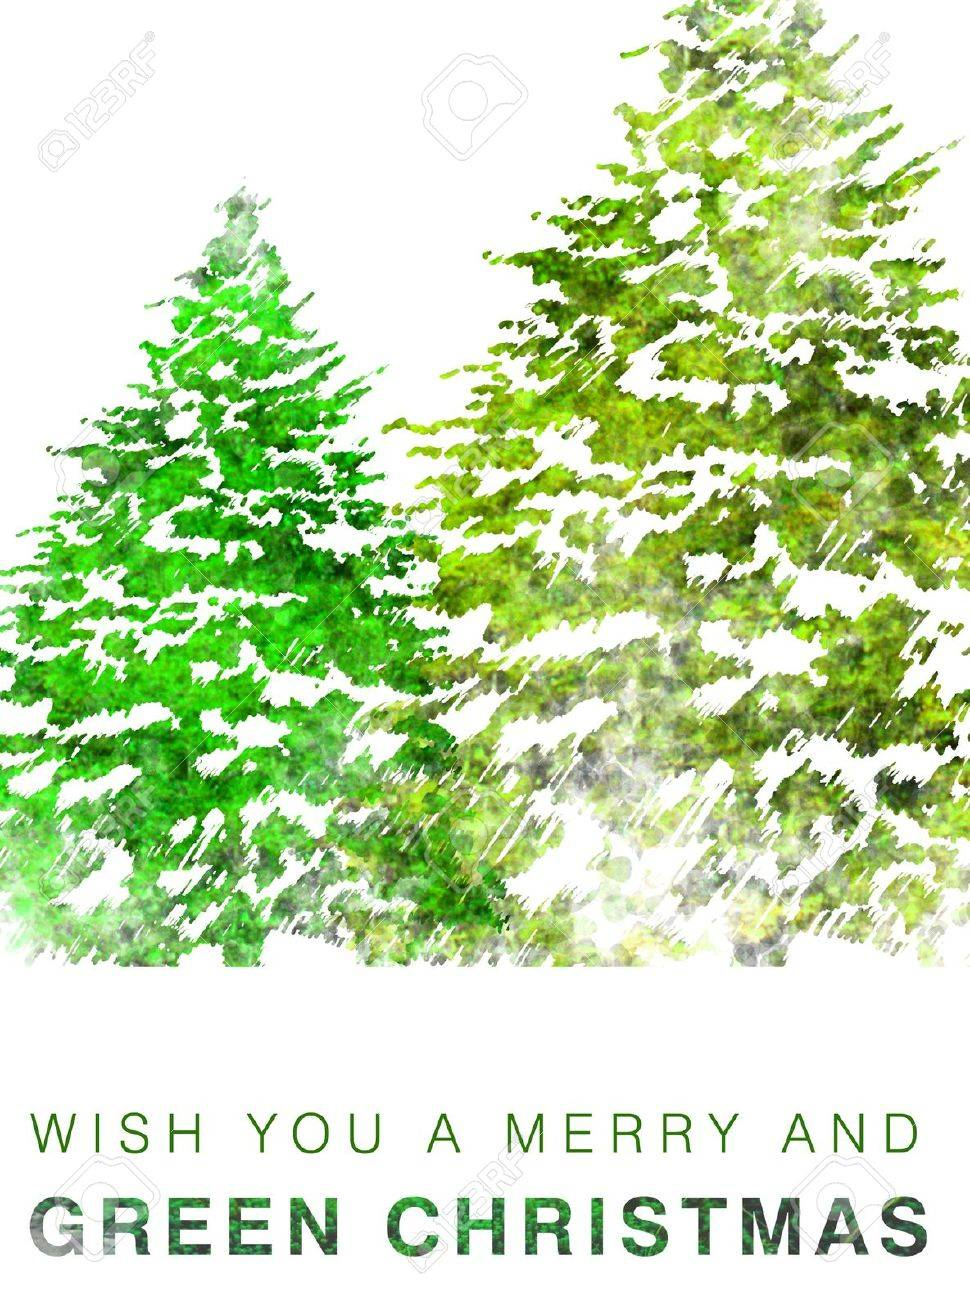 Eco friendly christmas card stock photo picture and royalty free eco friendly christmas card kristyandbryce Images